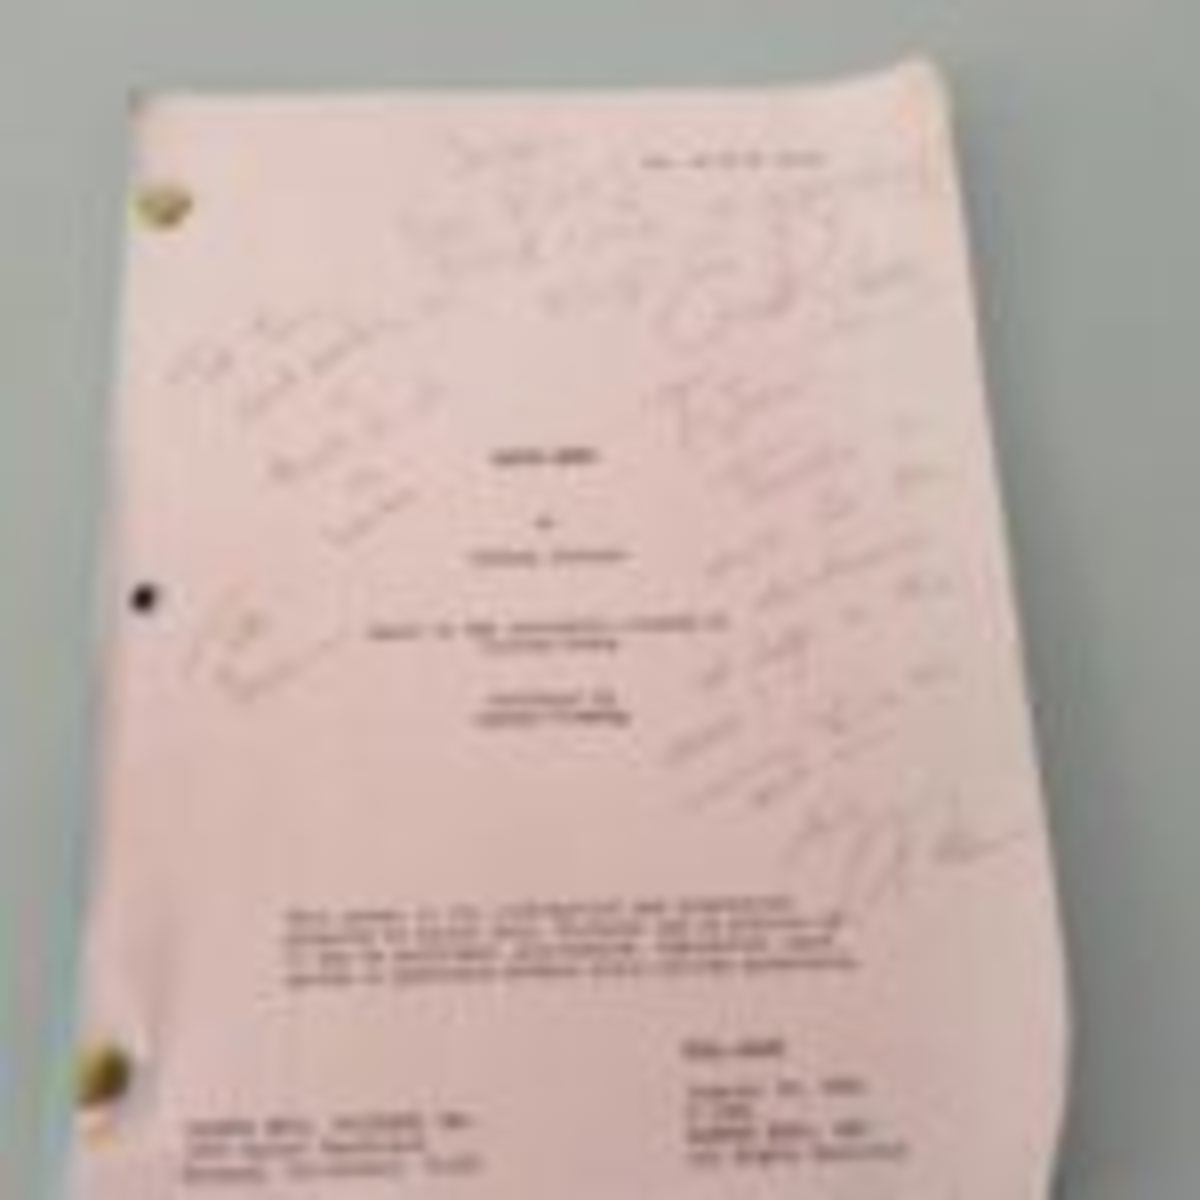 Signed 2007 Nancy Drew movie script with actress Emma Roberts and director Andrew Fleming and actor who played Carson Drew - Tate Donovan.